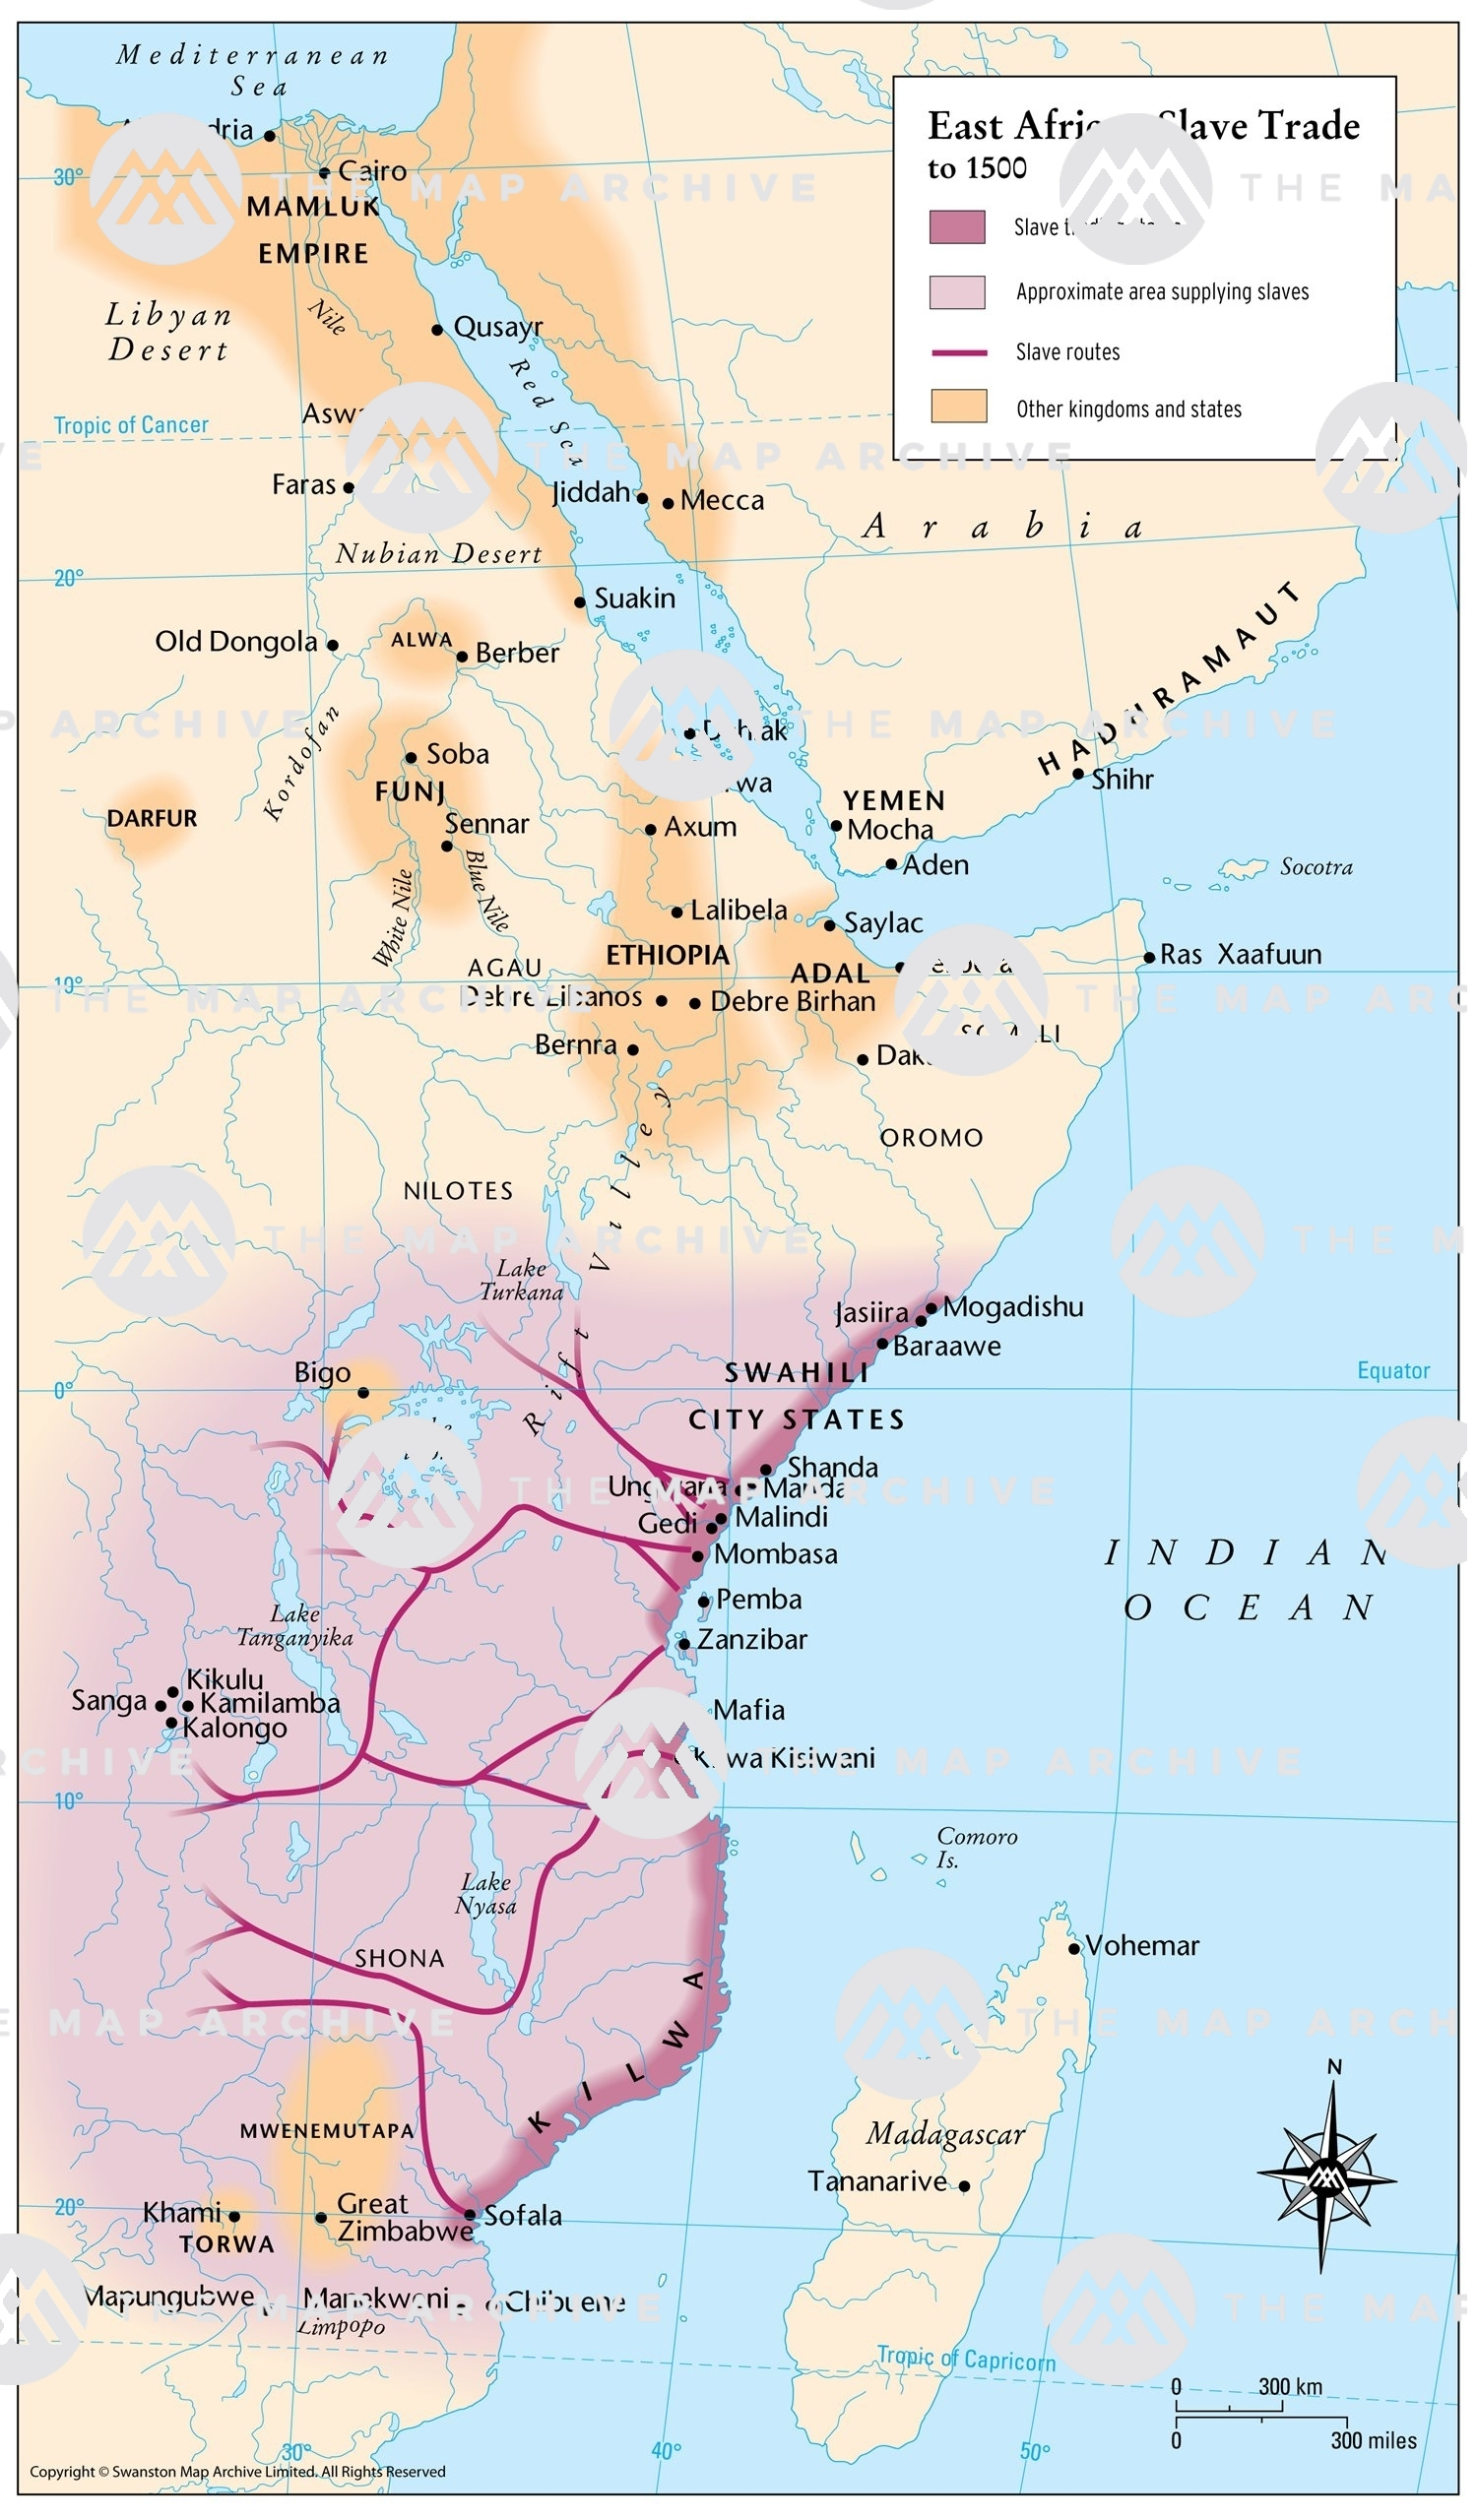 Map Of Africa Slave Trade East African Slave Trade to 1500